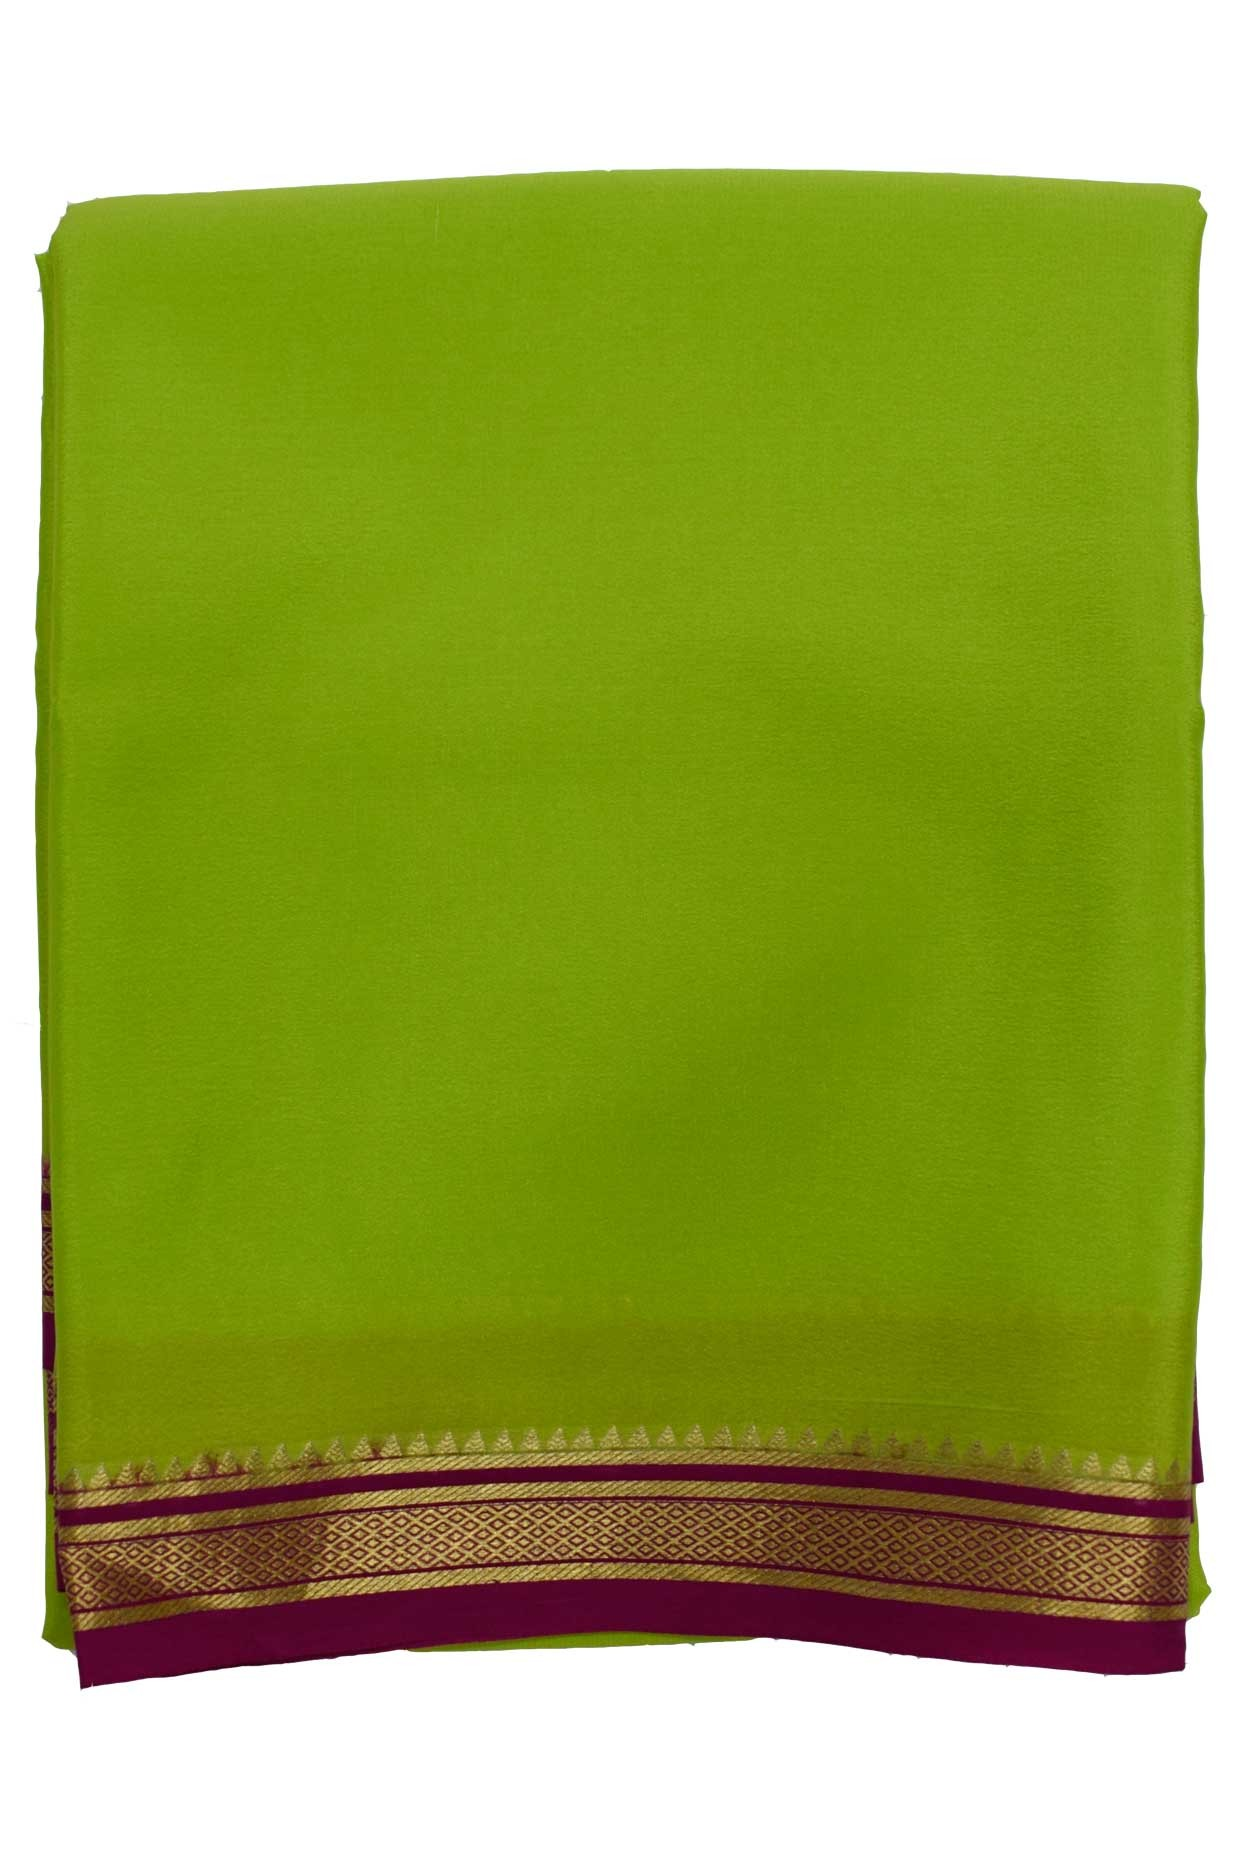 100% Pure Crape Mysore Traditional Silk Saree SC-38_olive_meron